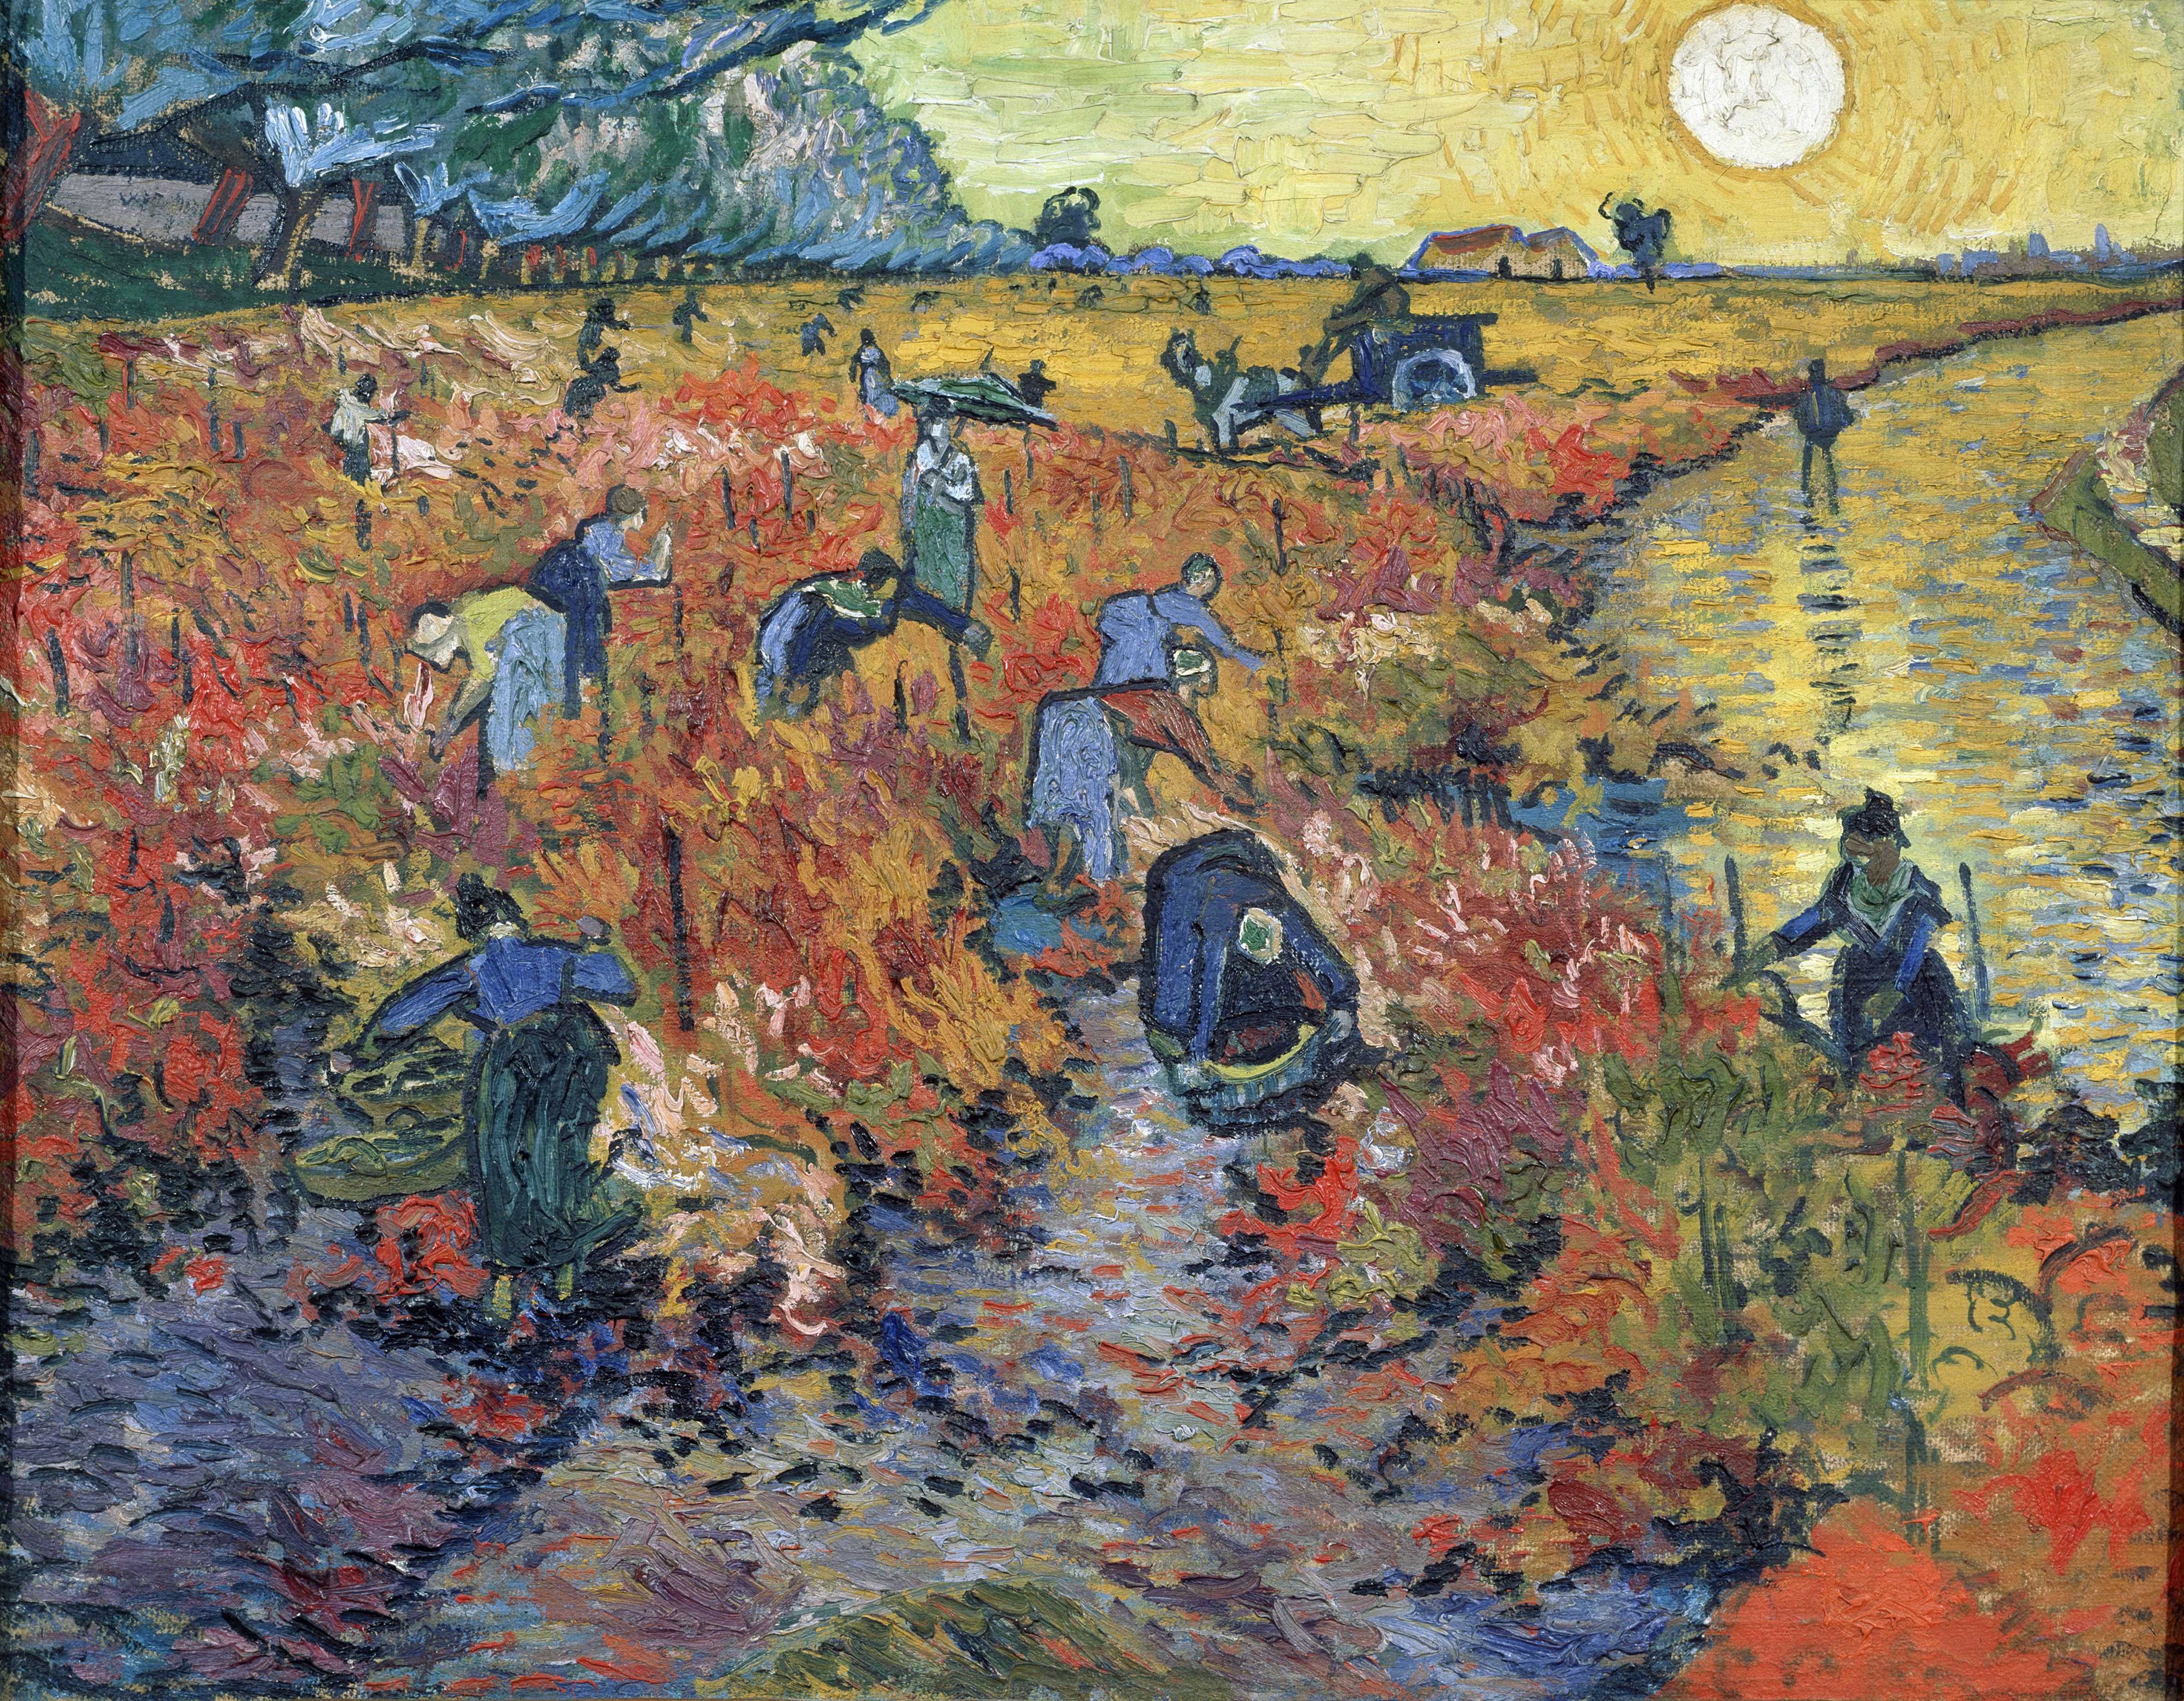 An enormous yellow sun shines over a red field, a dappled stream, and field workers dressed in blue.